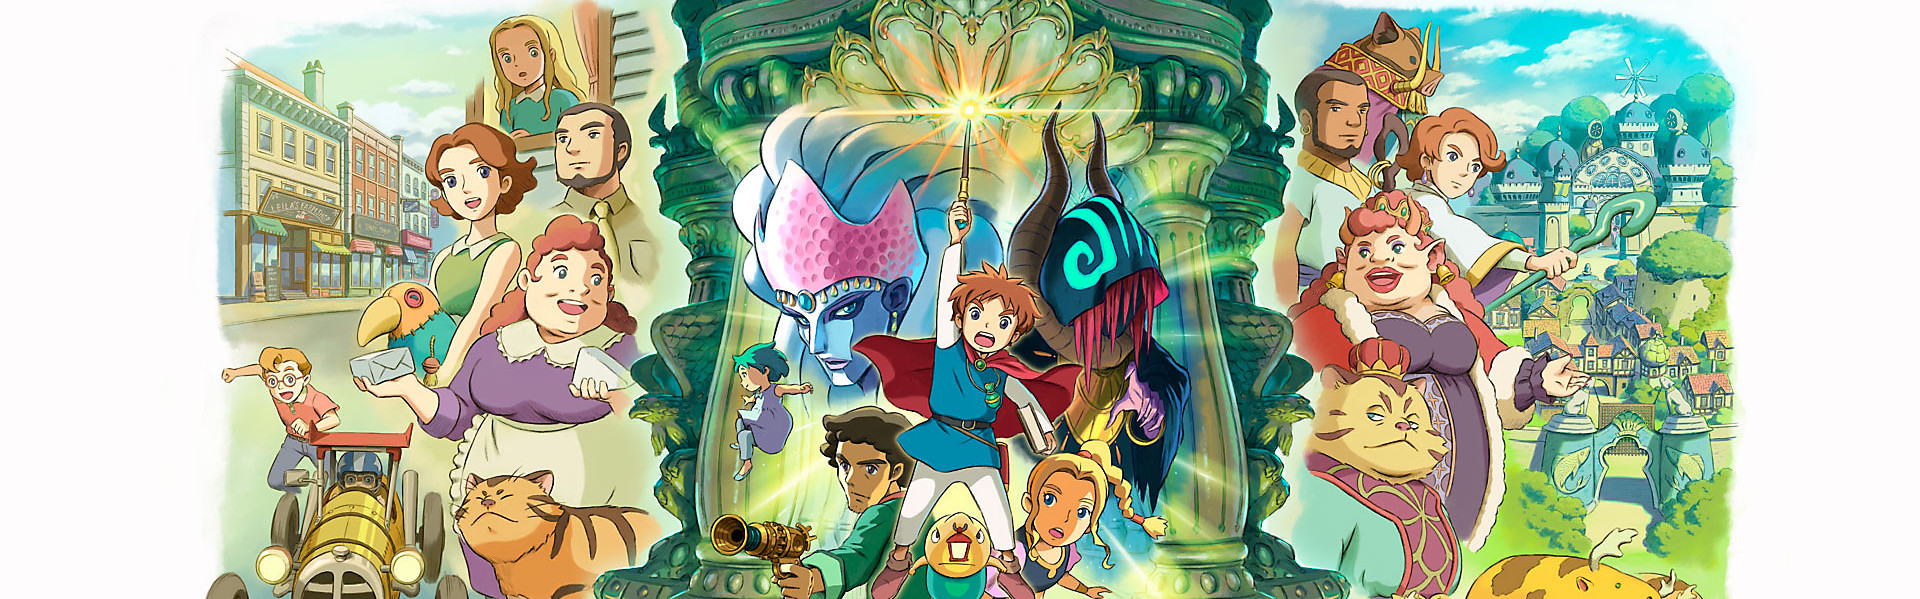 Ni no Kuni: Wrath of the White Witch Remastered Steam Key EUROPE